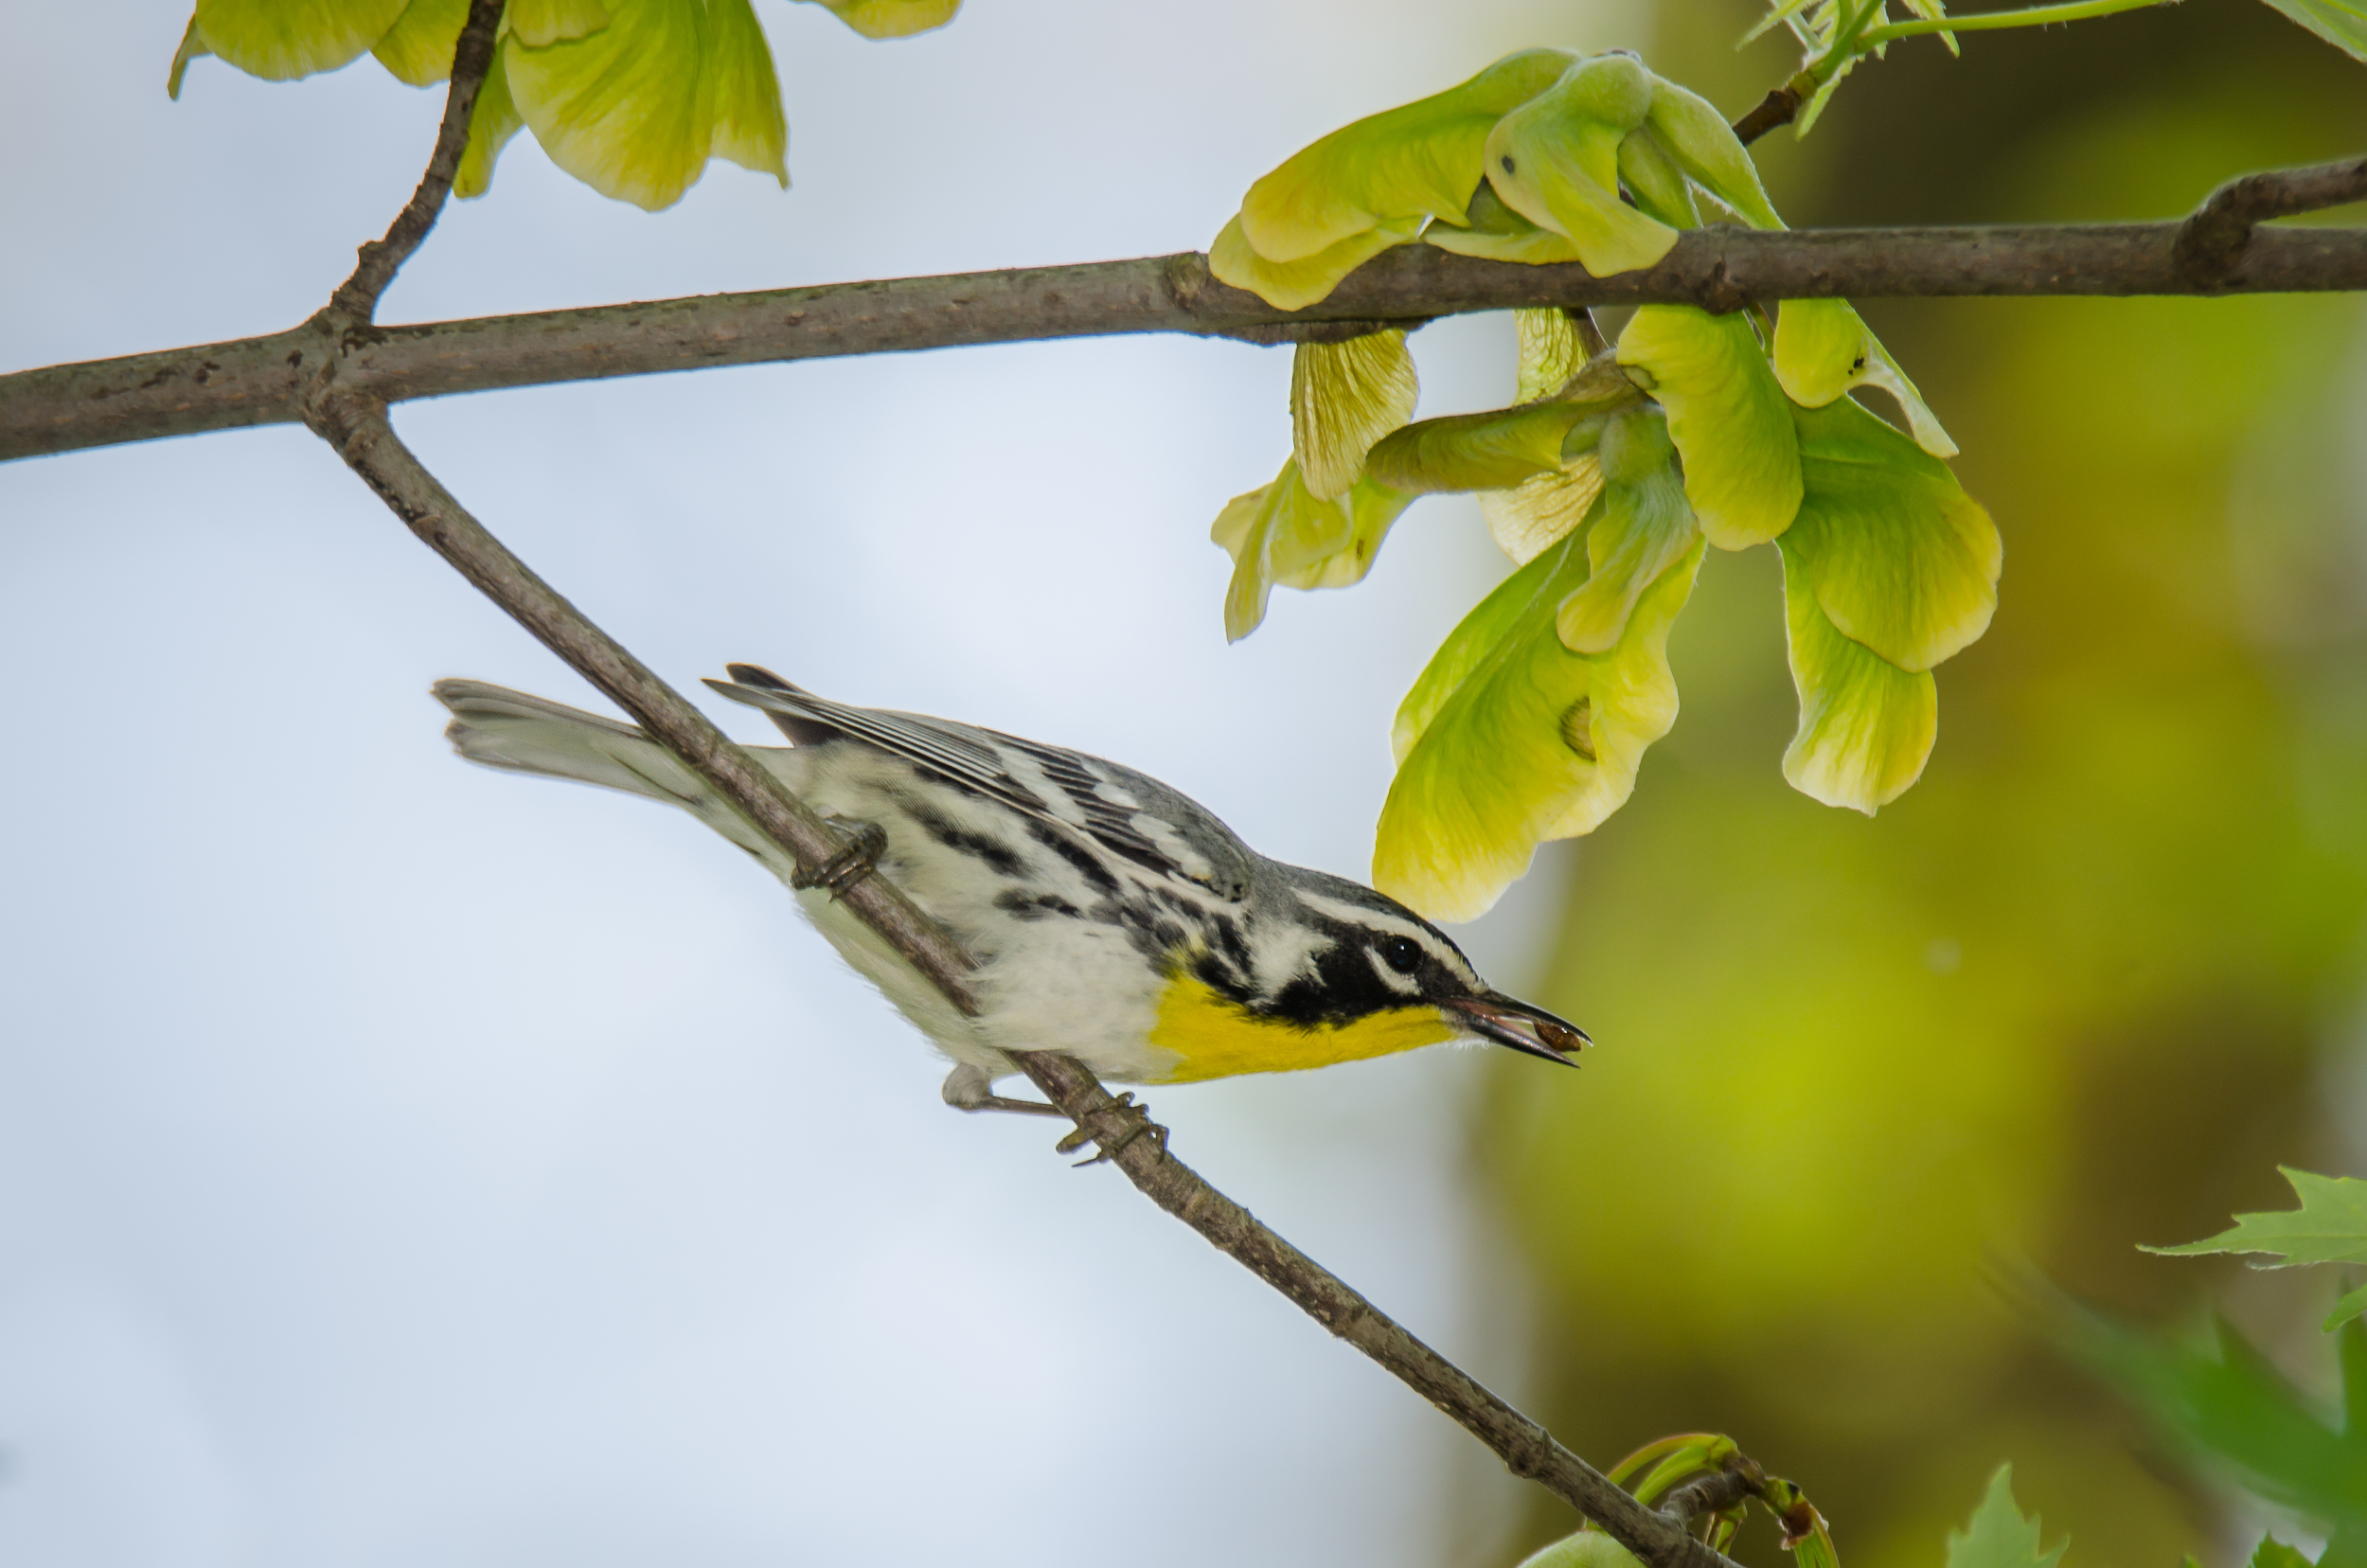 Yellow-Throated Warbler  Nikon D7000 ISO 125 600mm f/8.0 1/250 sec